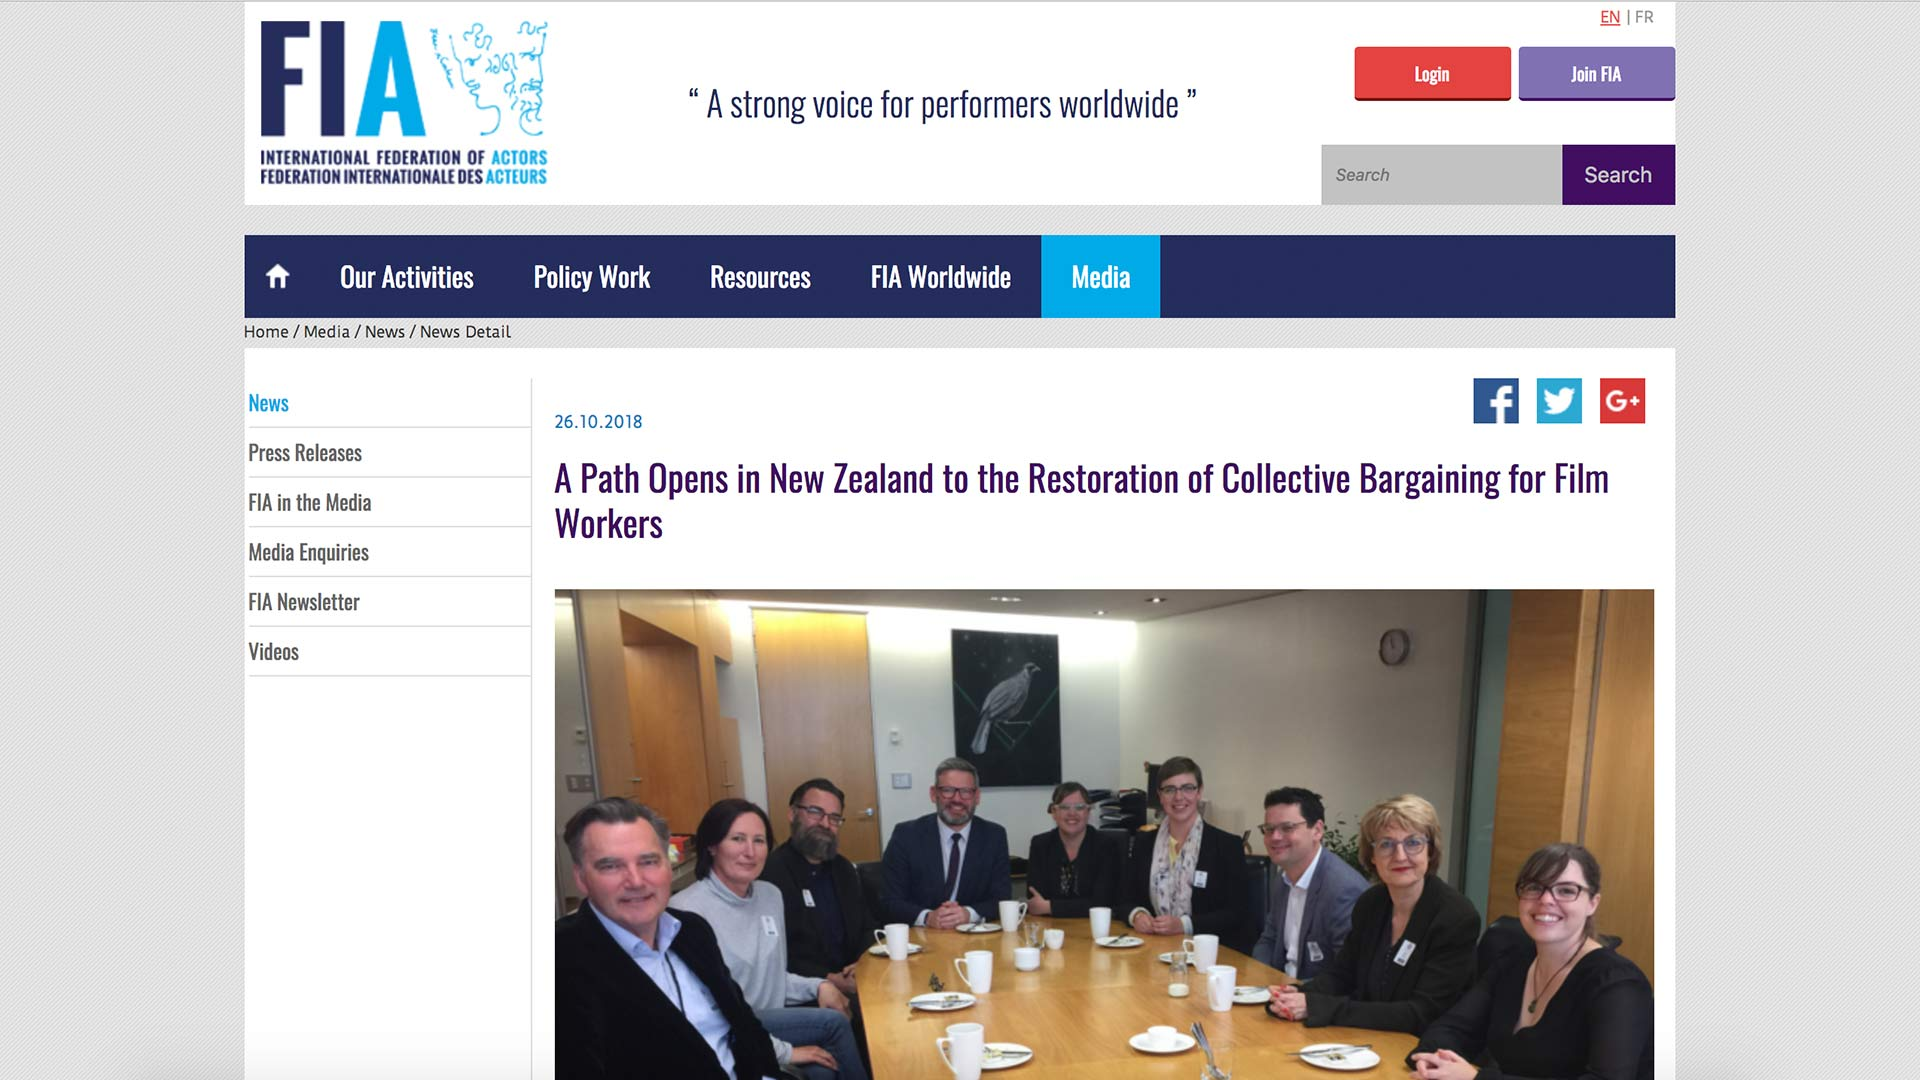 Fairness Rocks News A Path Opens in New Zealand to the Restoration of Collective Bargaining for Film Workers